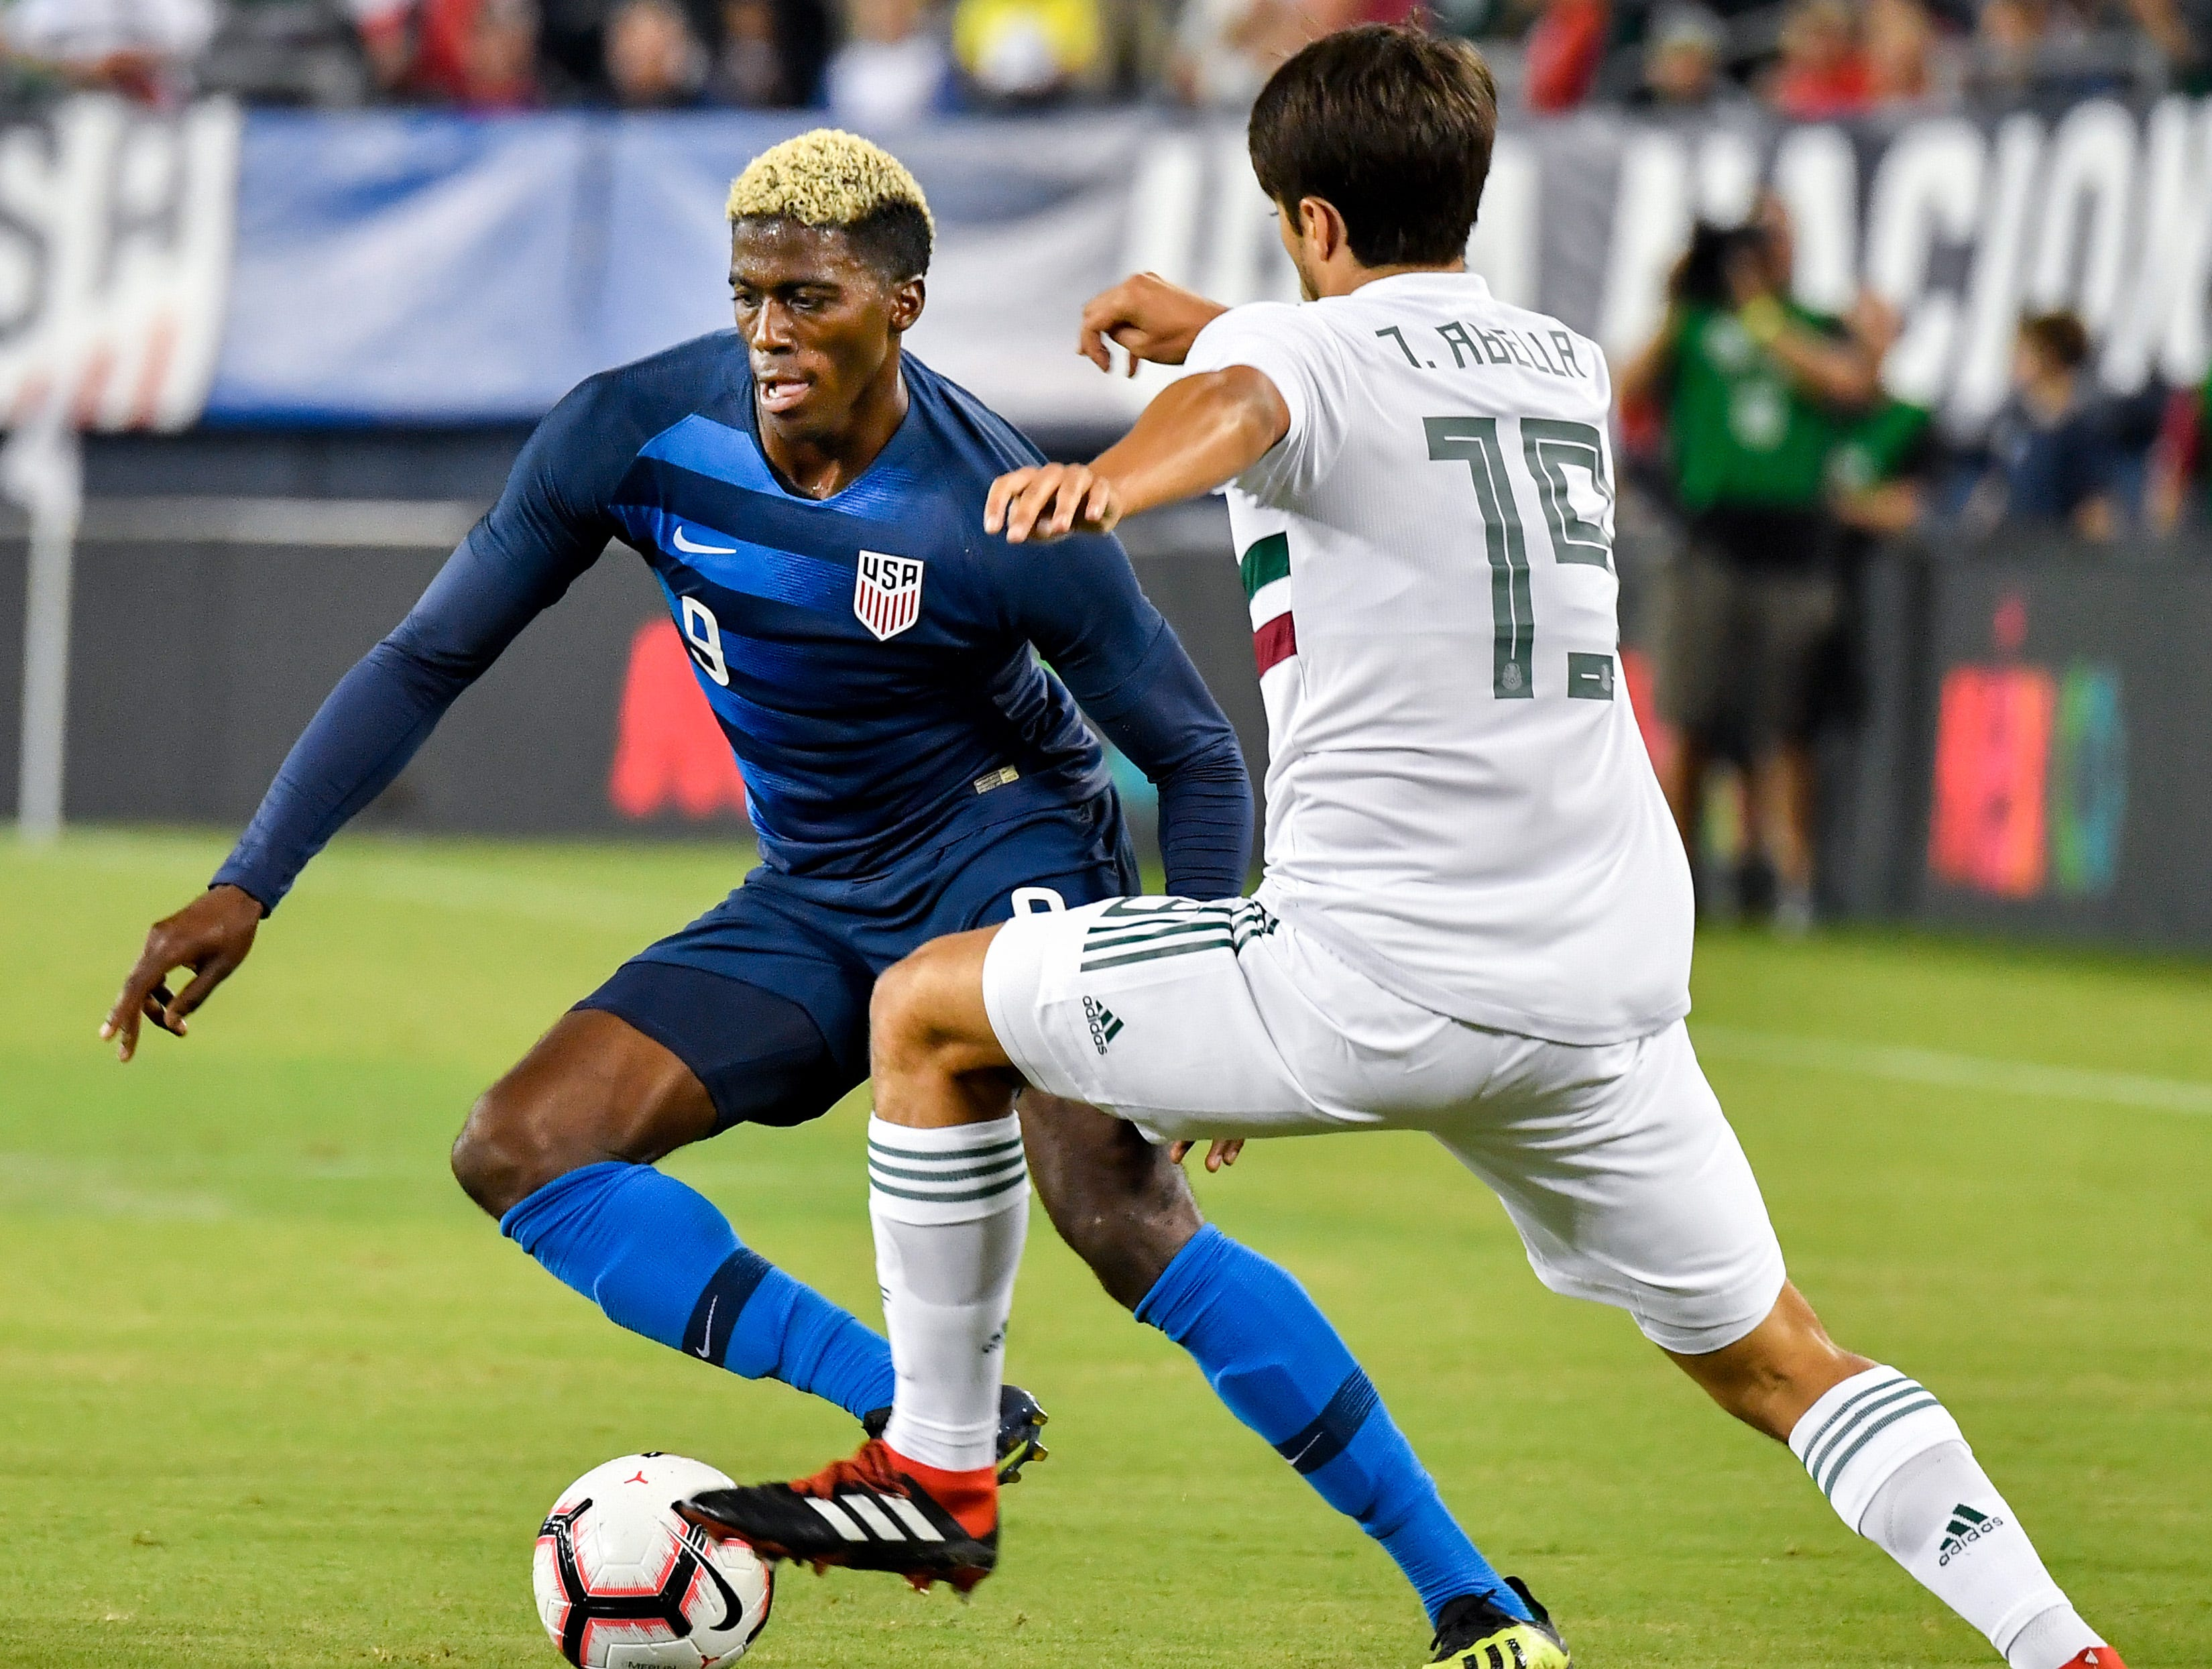 USA forward Gyasi Zardes (9) battles Mexico defender Jose Abella (19) during the first half at Nissan Stadium in Nashville, Tenn., Tuesday, Sept. 11, 2018.